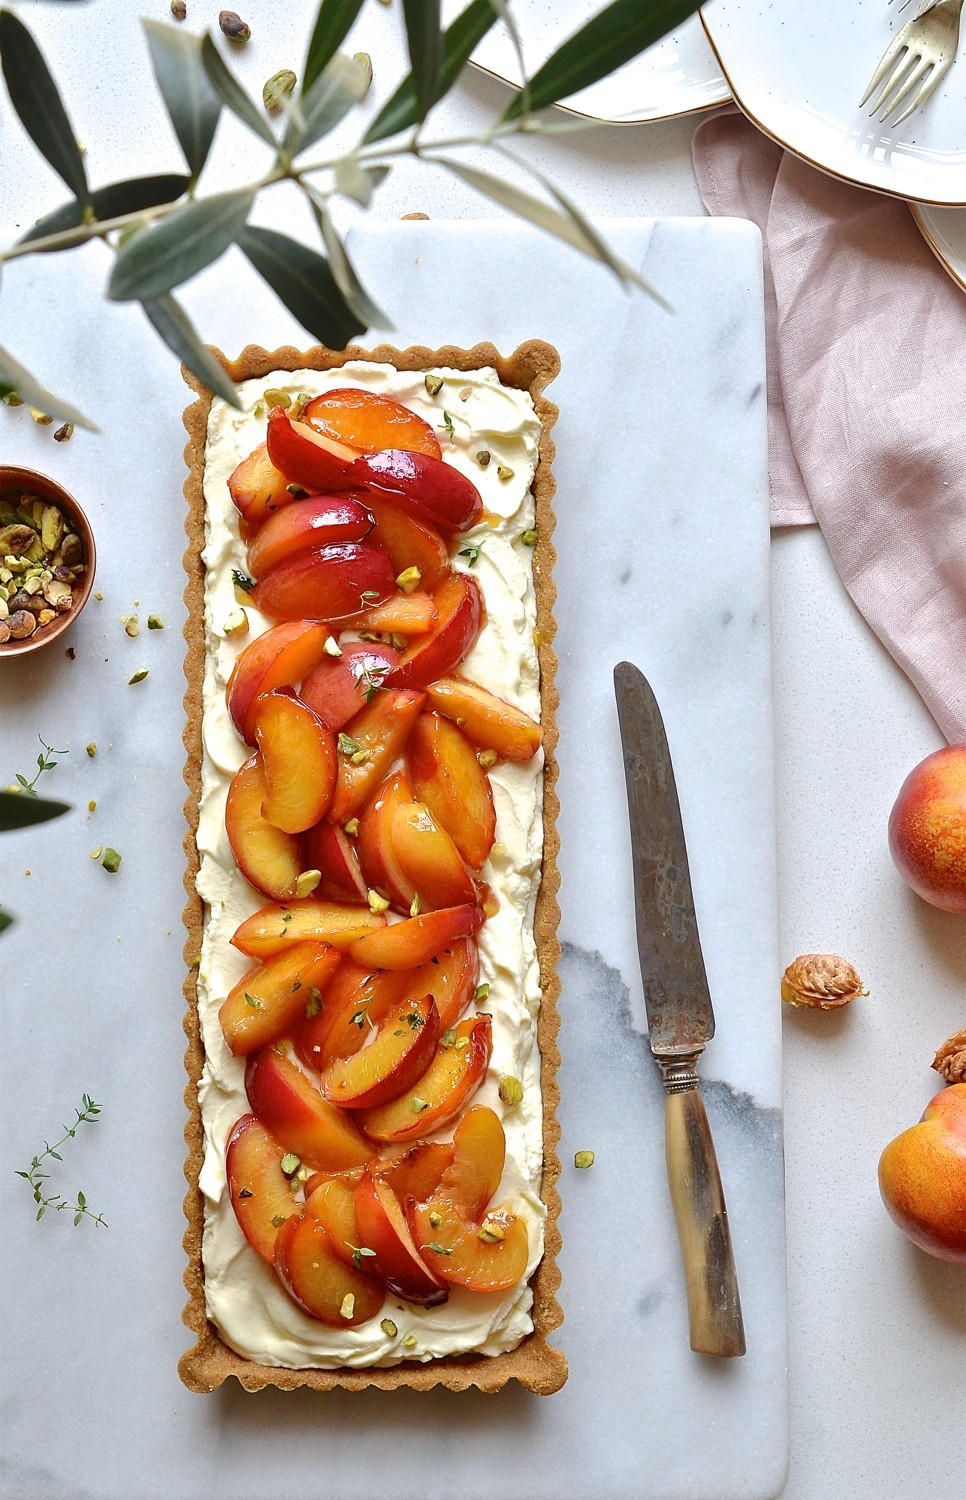 Nectarine tart with thyme and honey butter